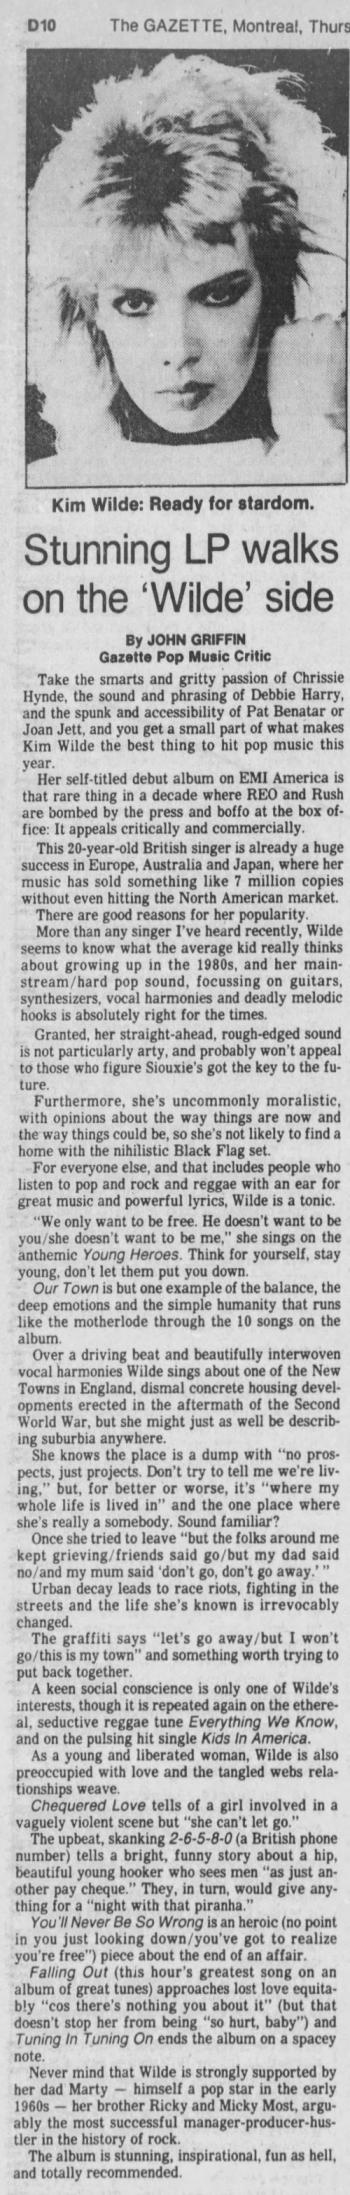 The Gazette (Canada), April 8, 1982